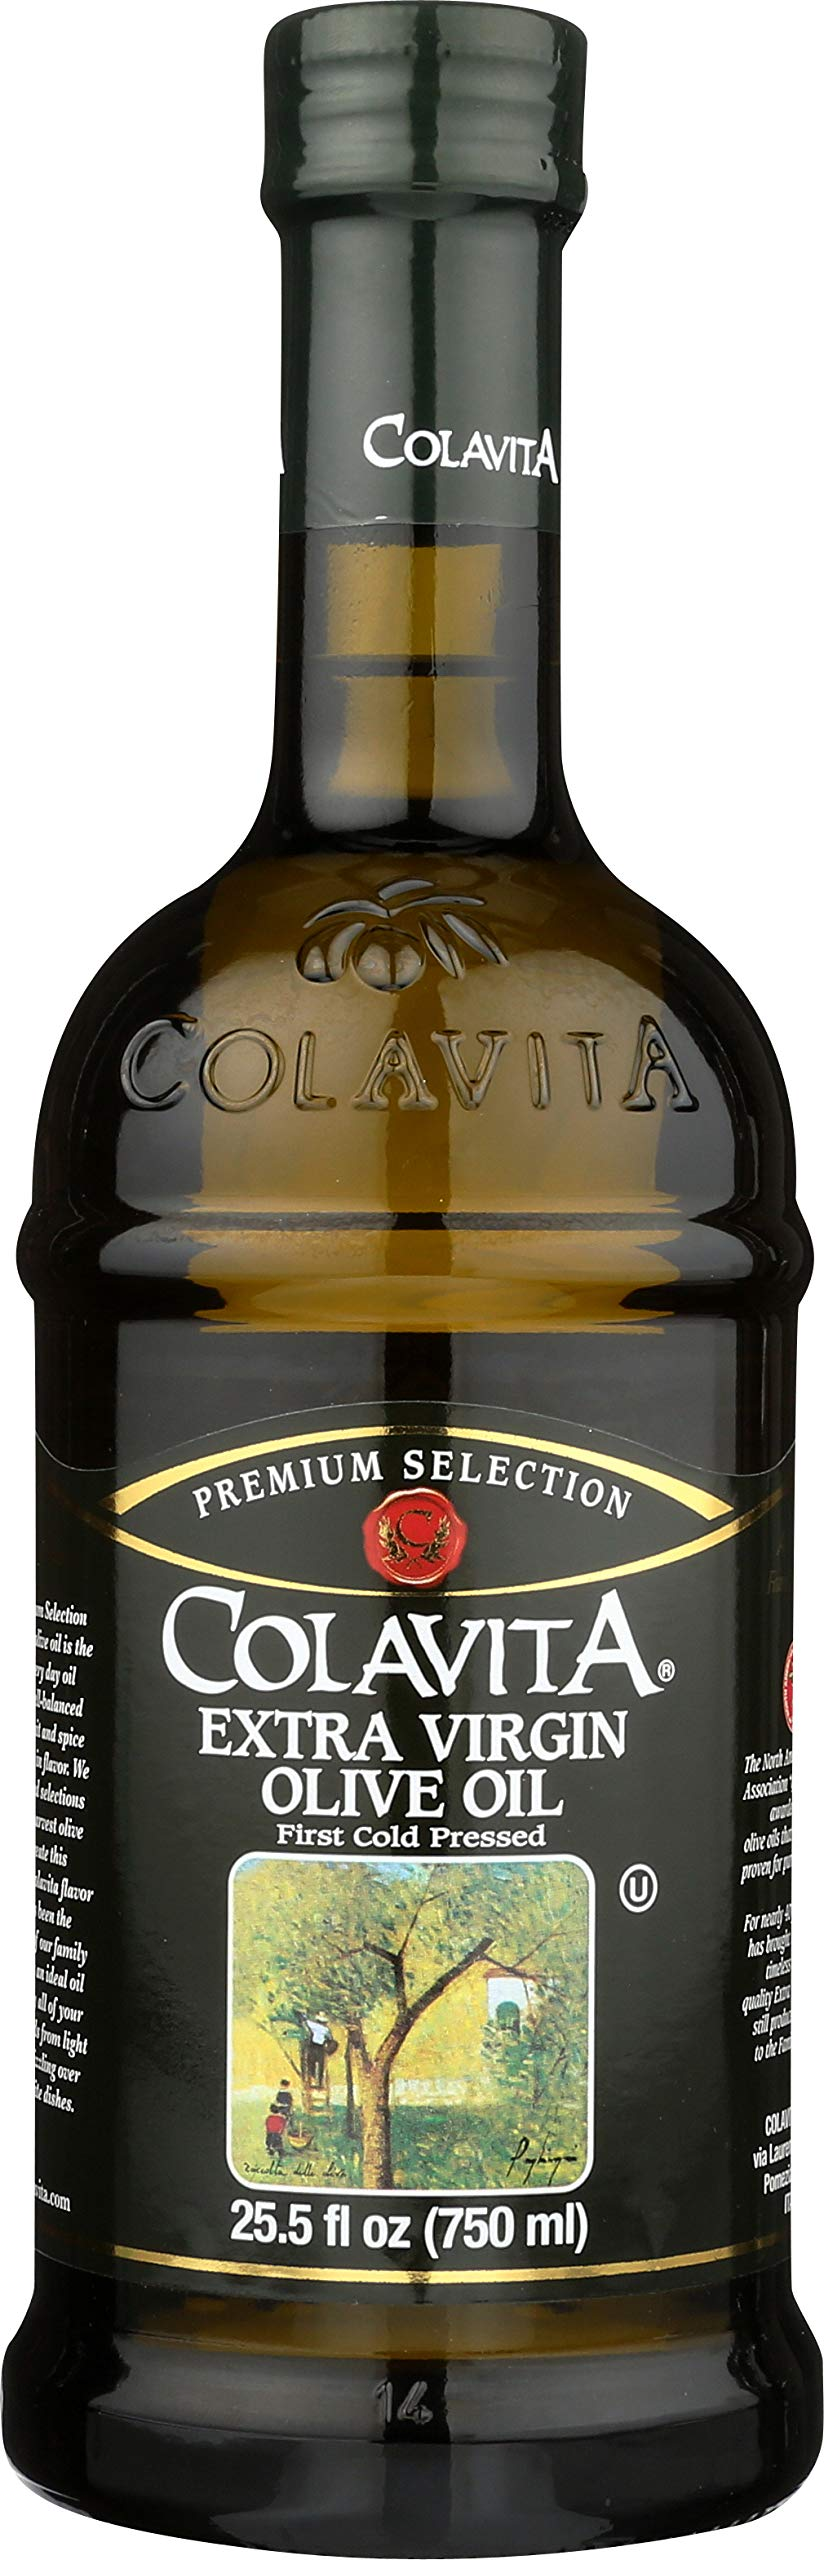 Colavita Extra Virgin Olive Oil, First Cold Pressed, 25.5 Fl Oz (Pack of 1), Glass Bottle by Colavita